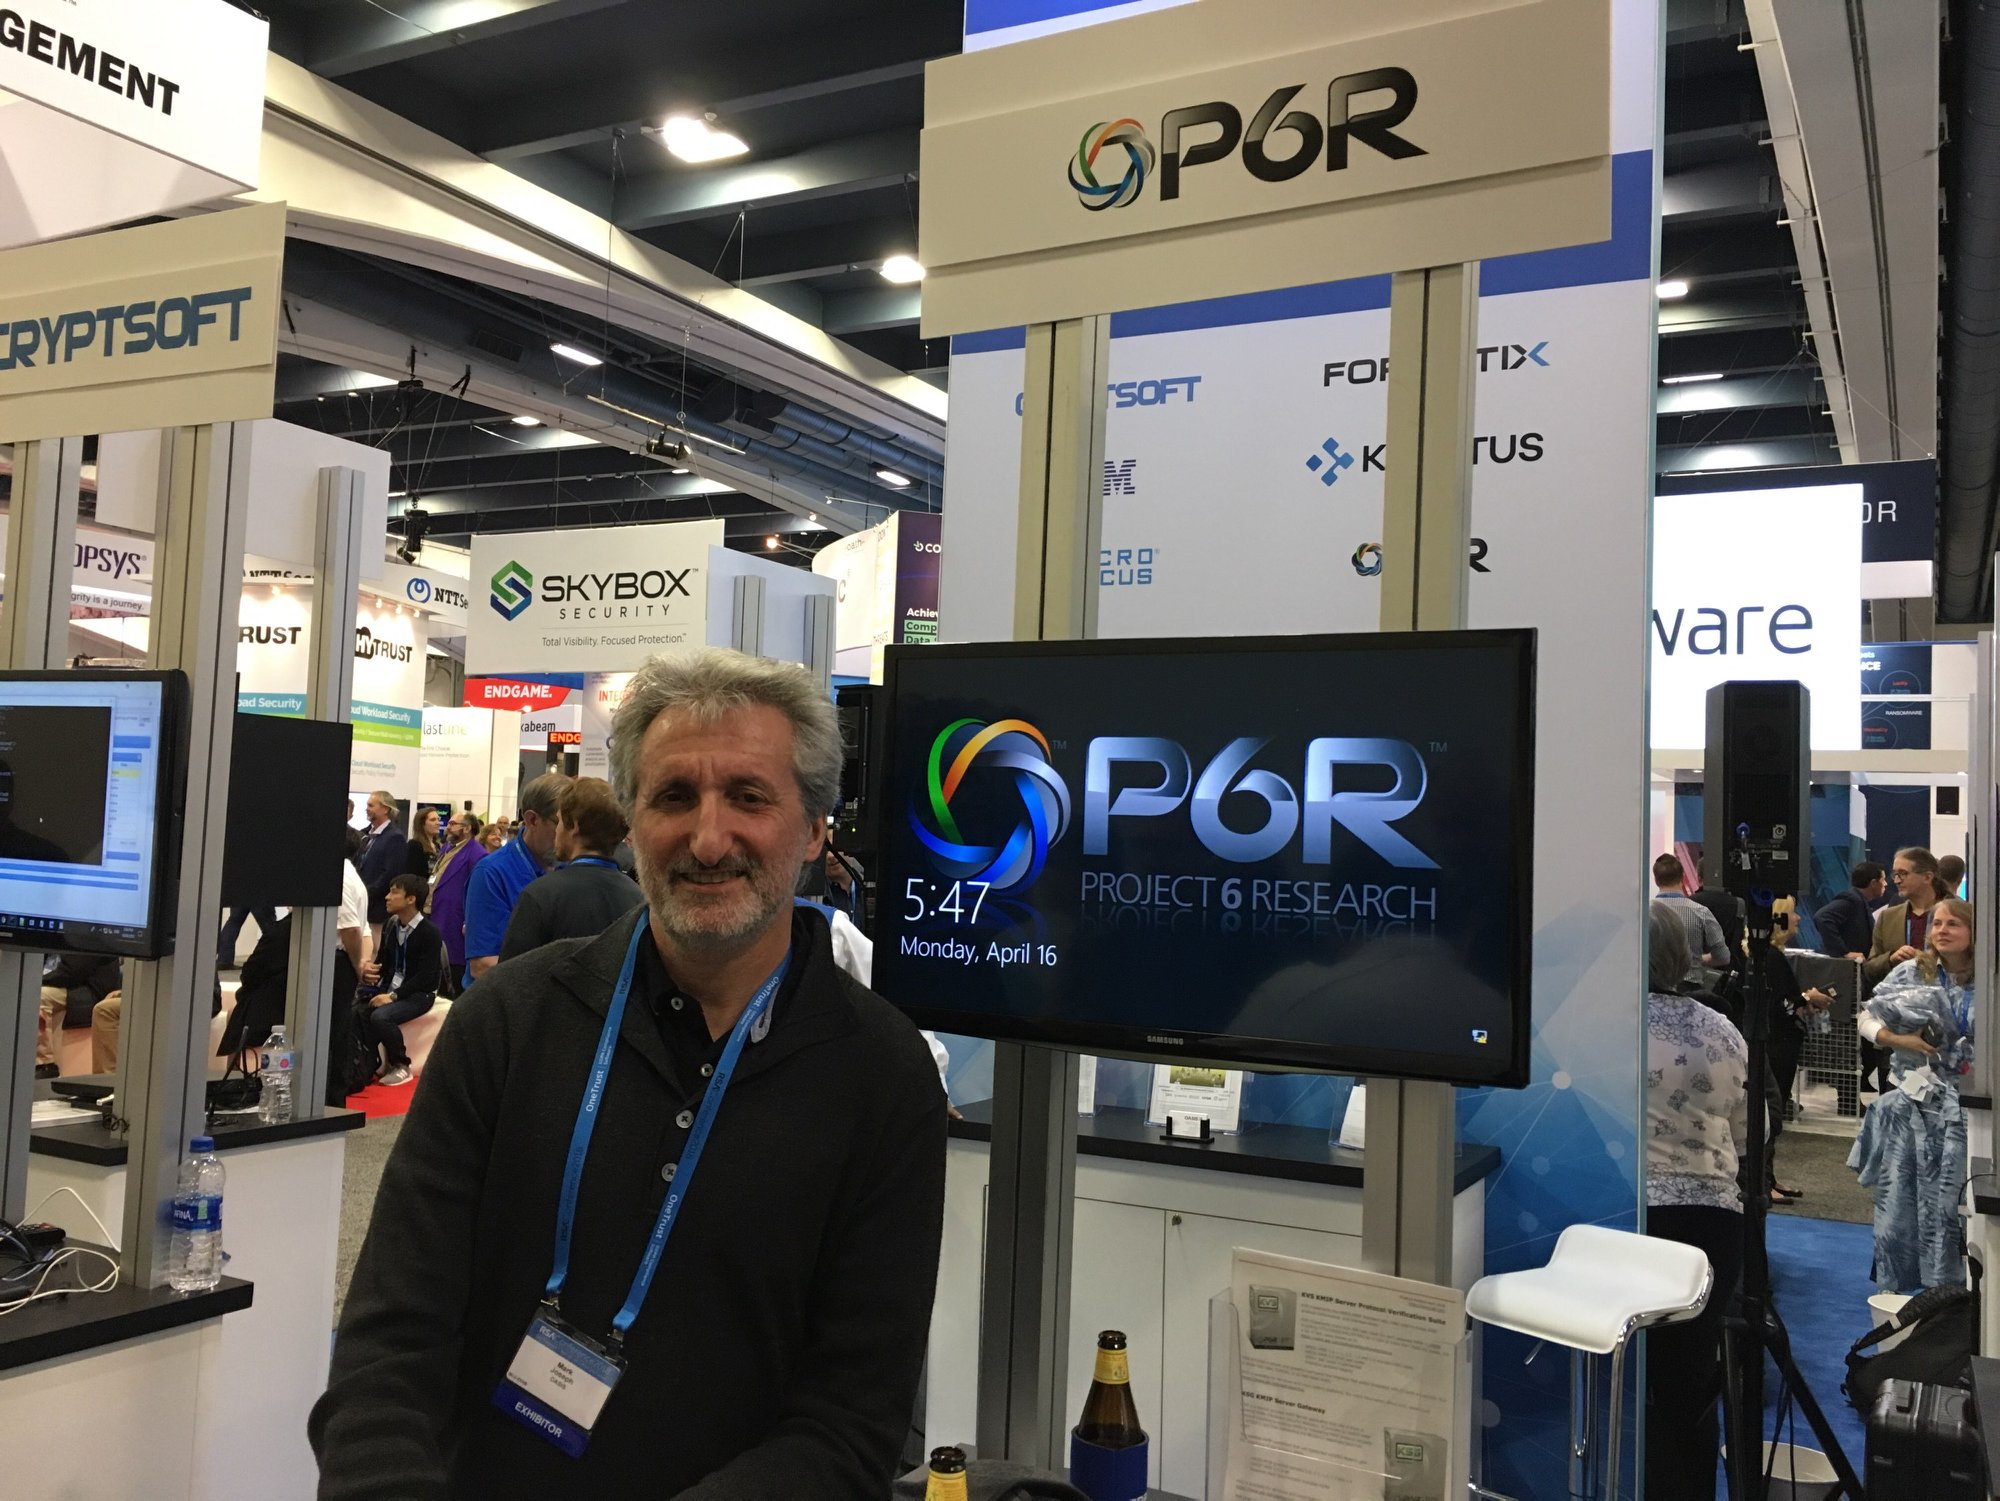 P6R at 2018 RSA Conference Expo